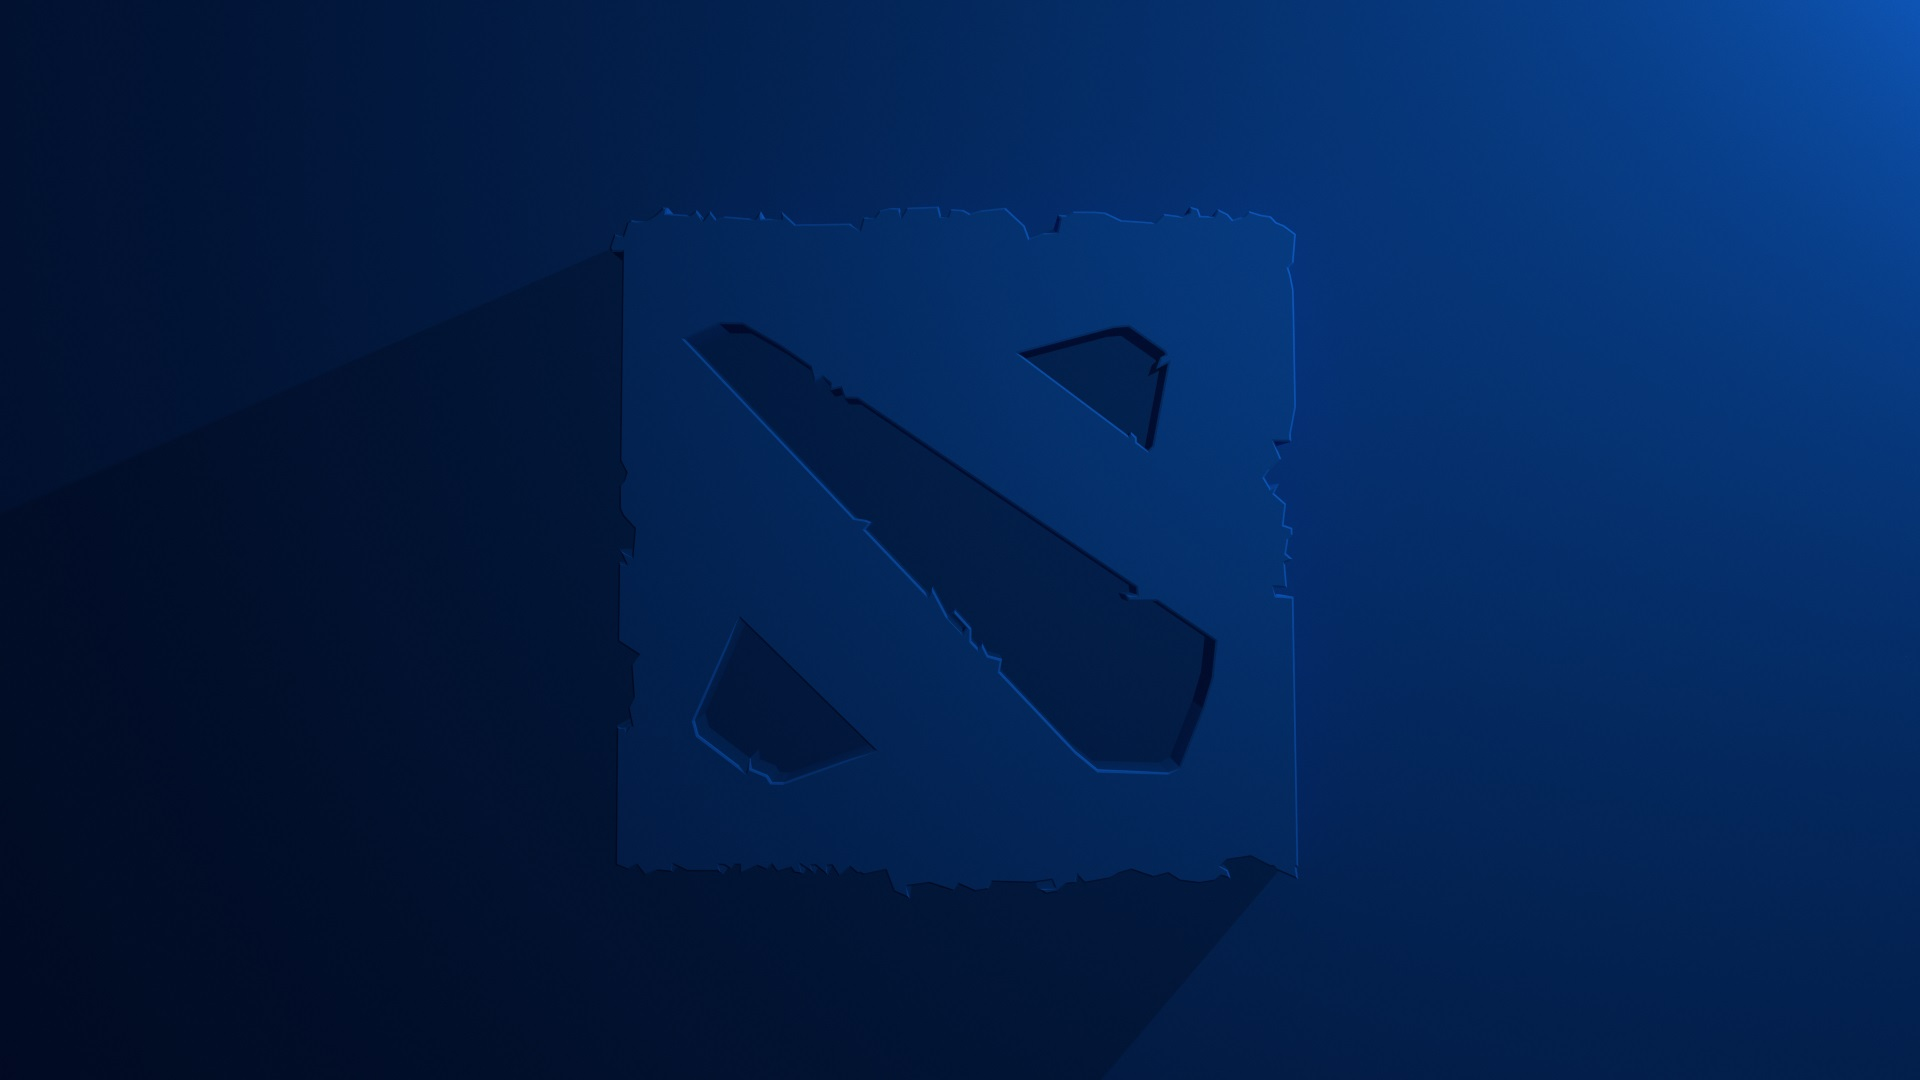 3d Animation Wallpaper Hd Dota 2 Logo Blue Background Desktop Photos Wallpapers